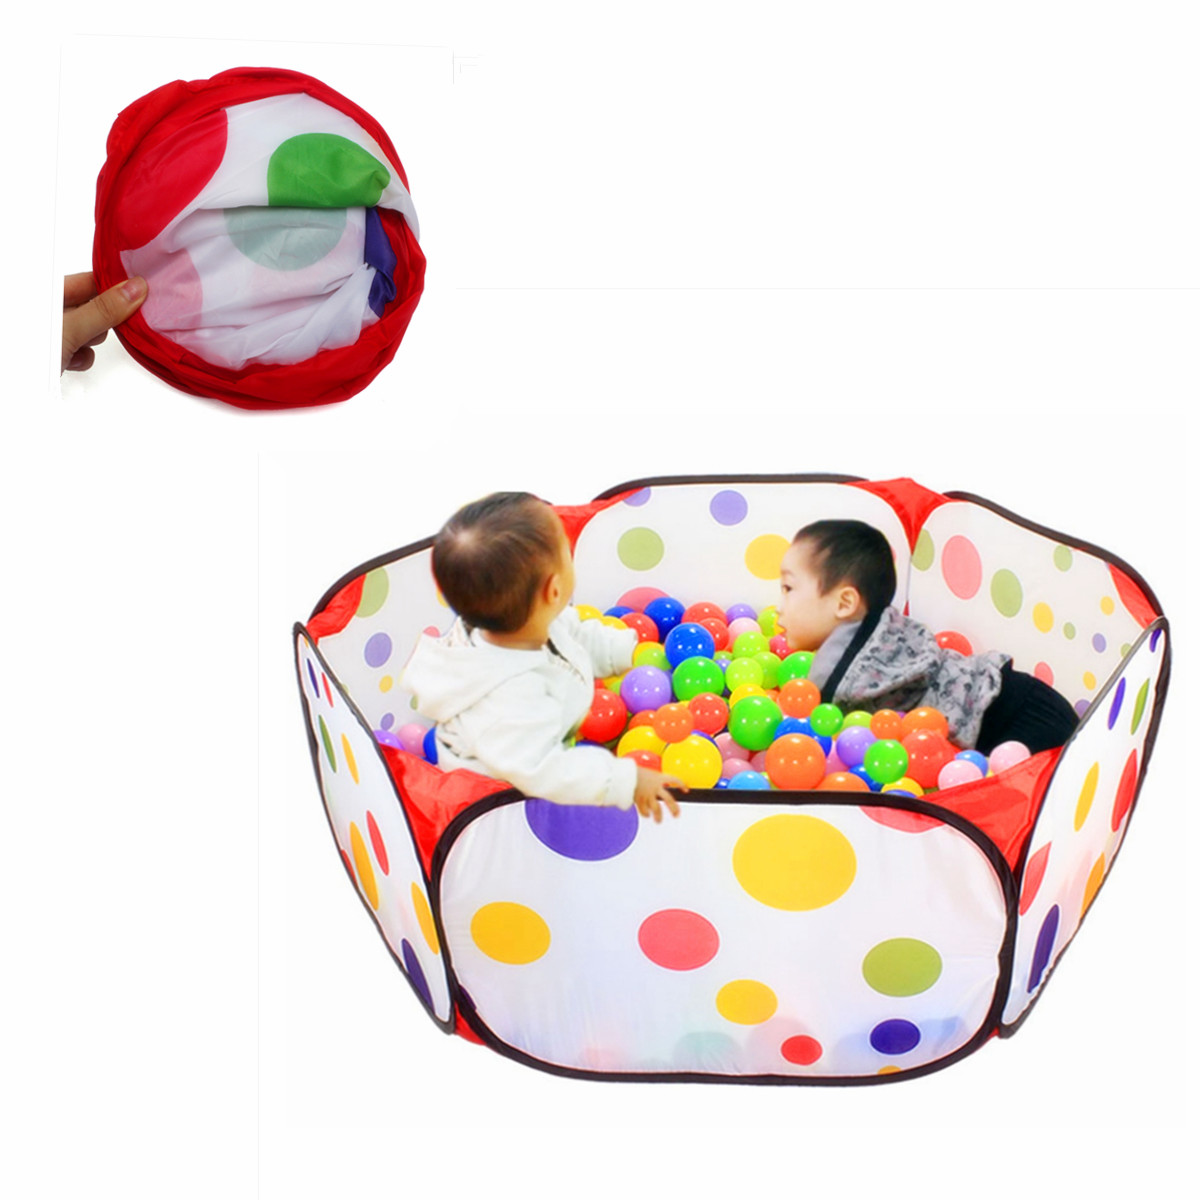 how to make a ball pit in your room